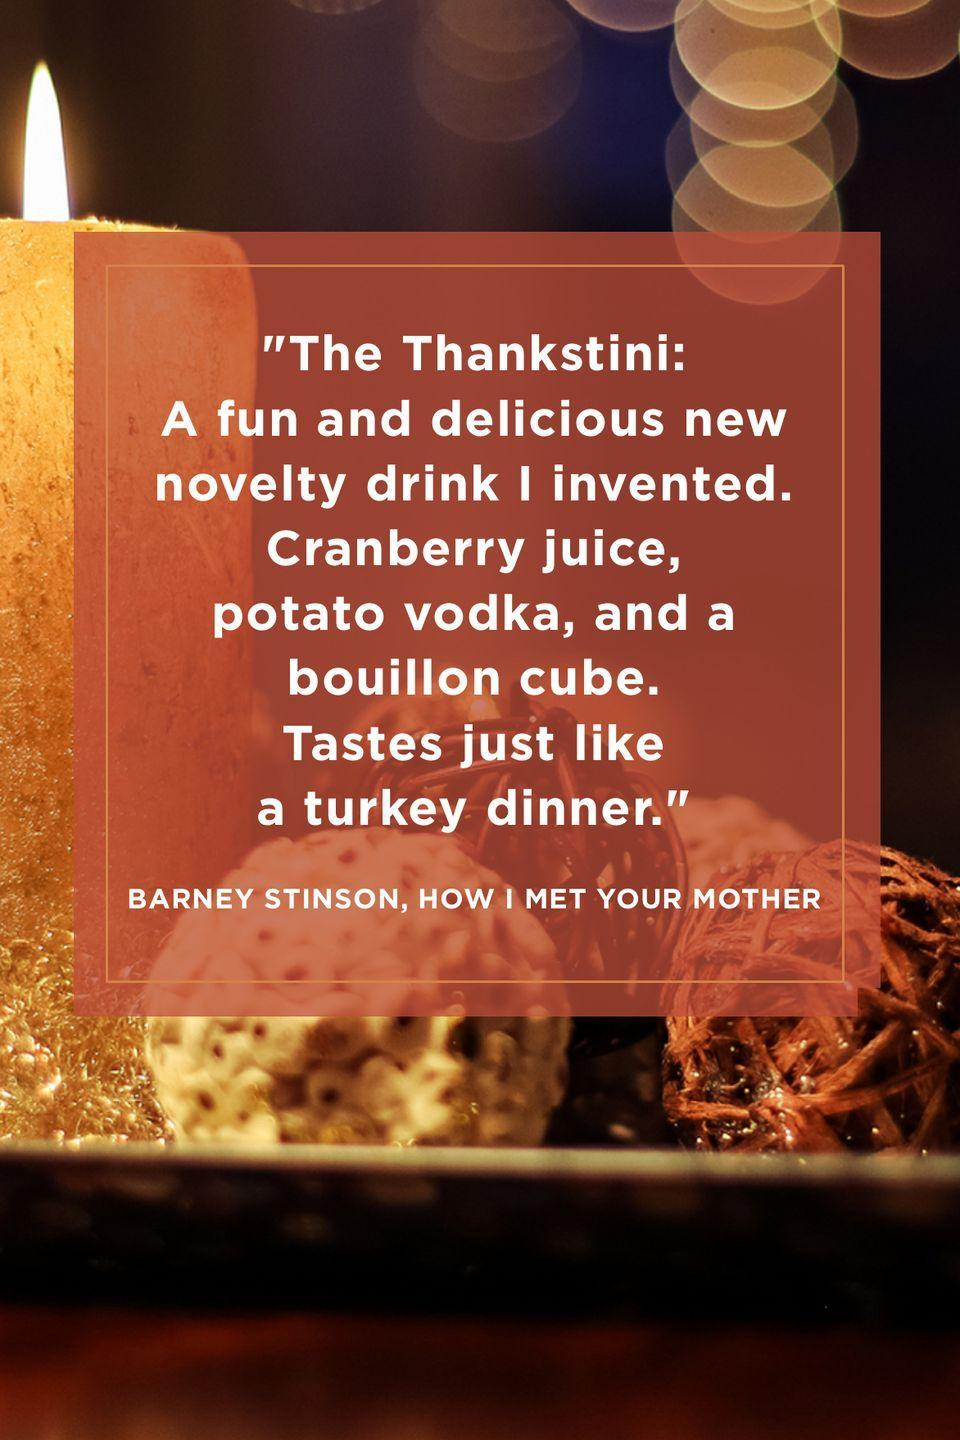 "<p>""The Thankstini: A fun and delicious new novelty drink I invented. Cranberry juice, potato vodka, and a bouillon cube. Tastes just like a turkey dinner.""</p>"